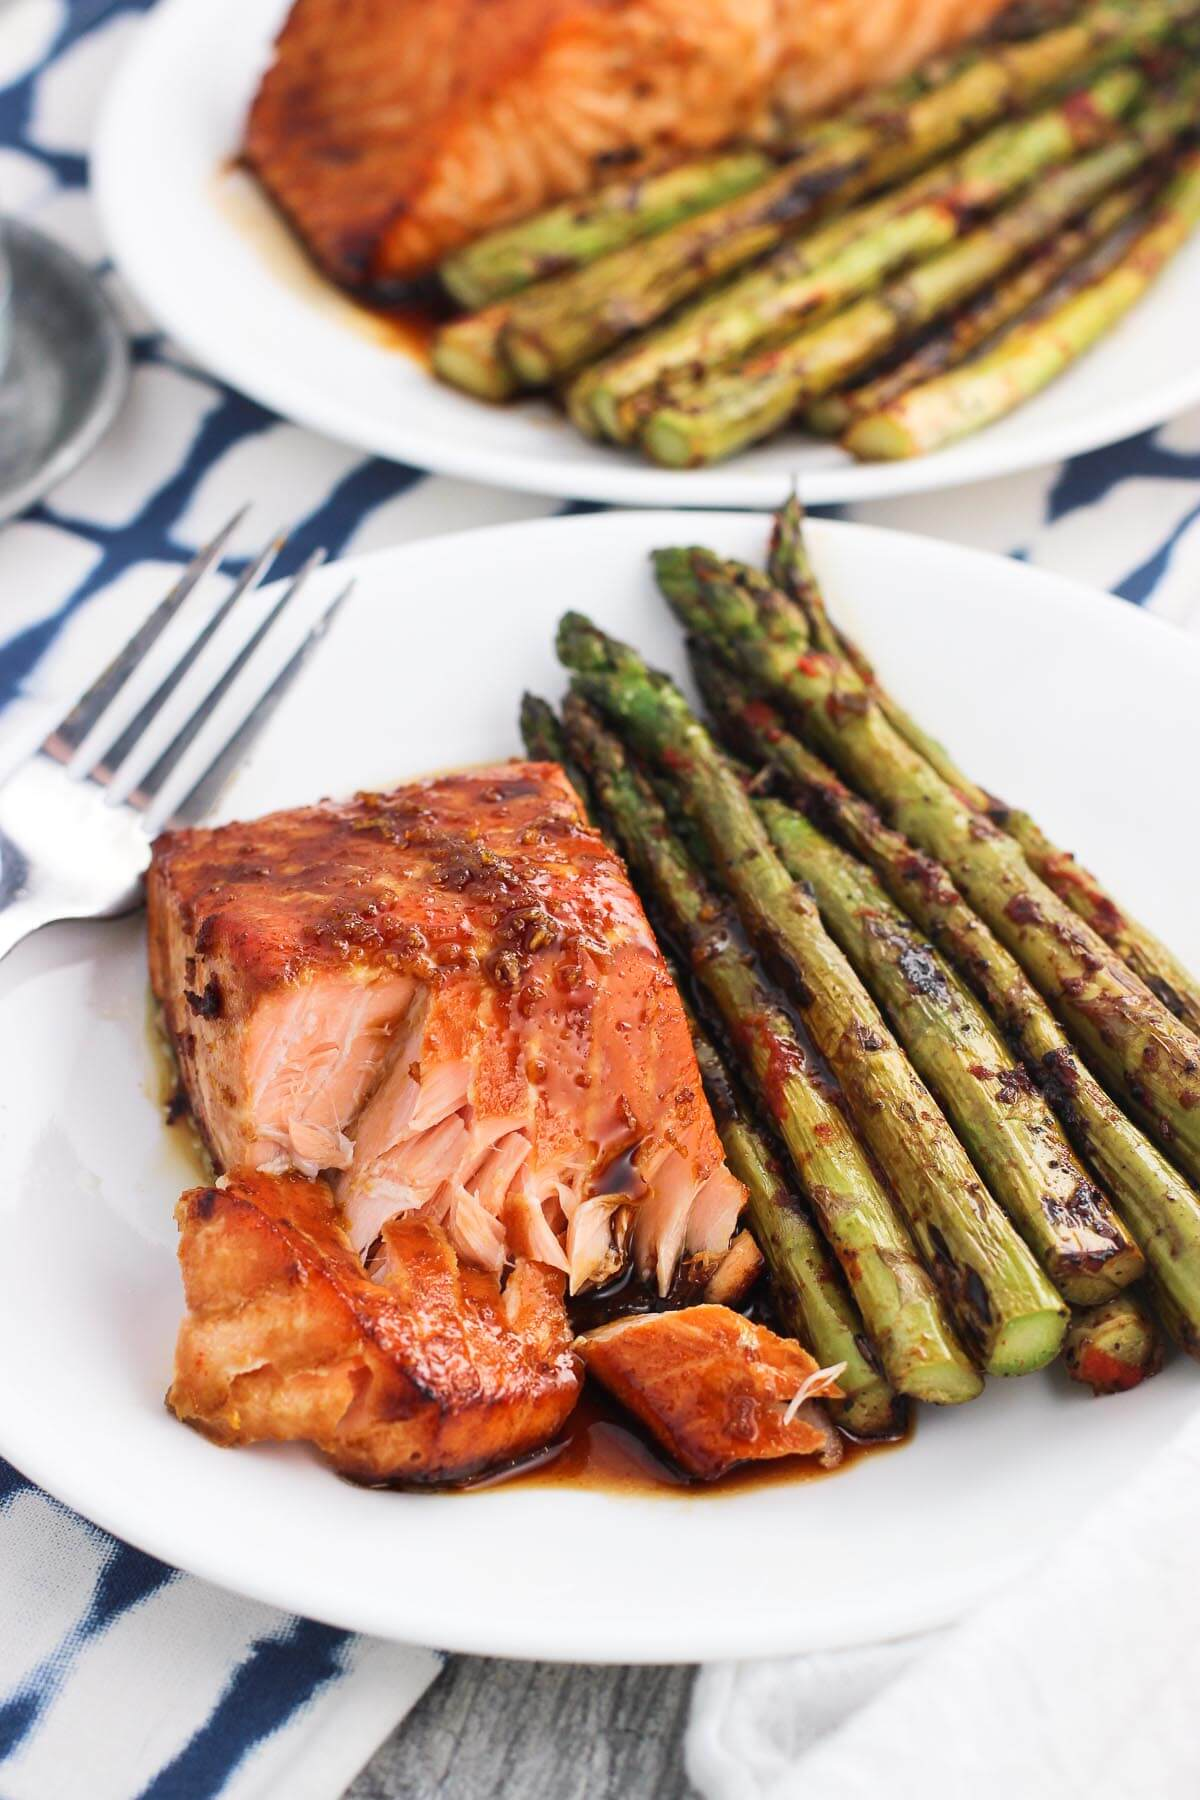 Today I'm excited to share one of my recent favorite dinners - sweet and spicy orange salmon. It's a healthy dinner idea that is quick and easy.